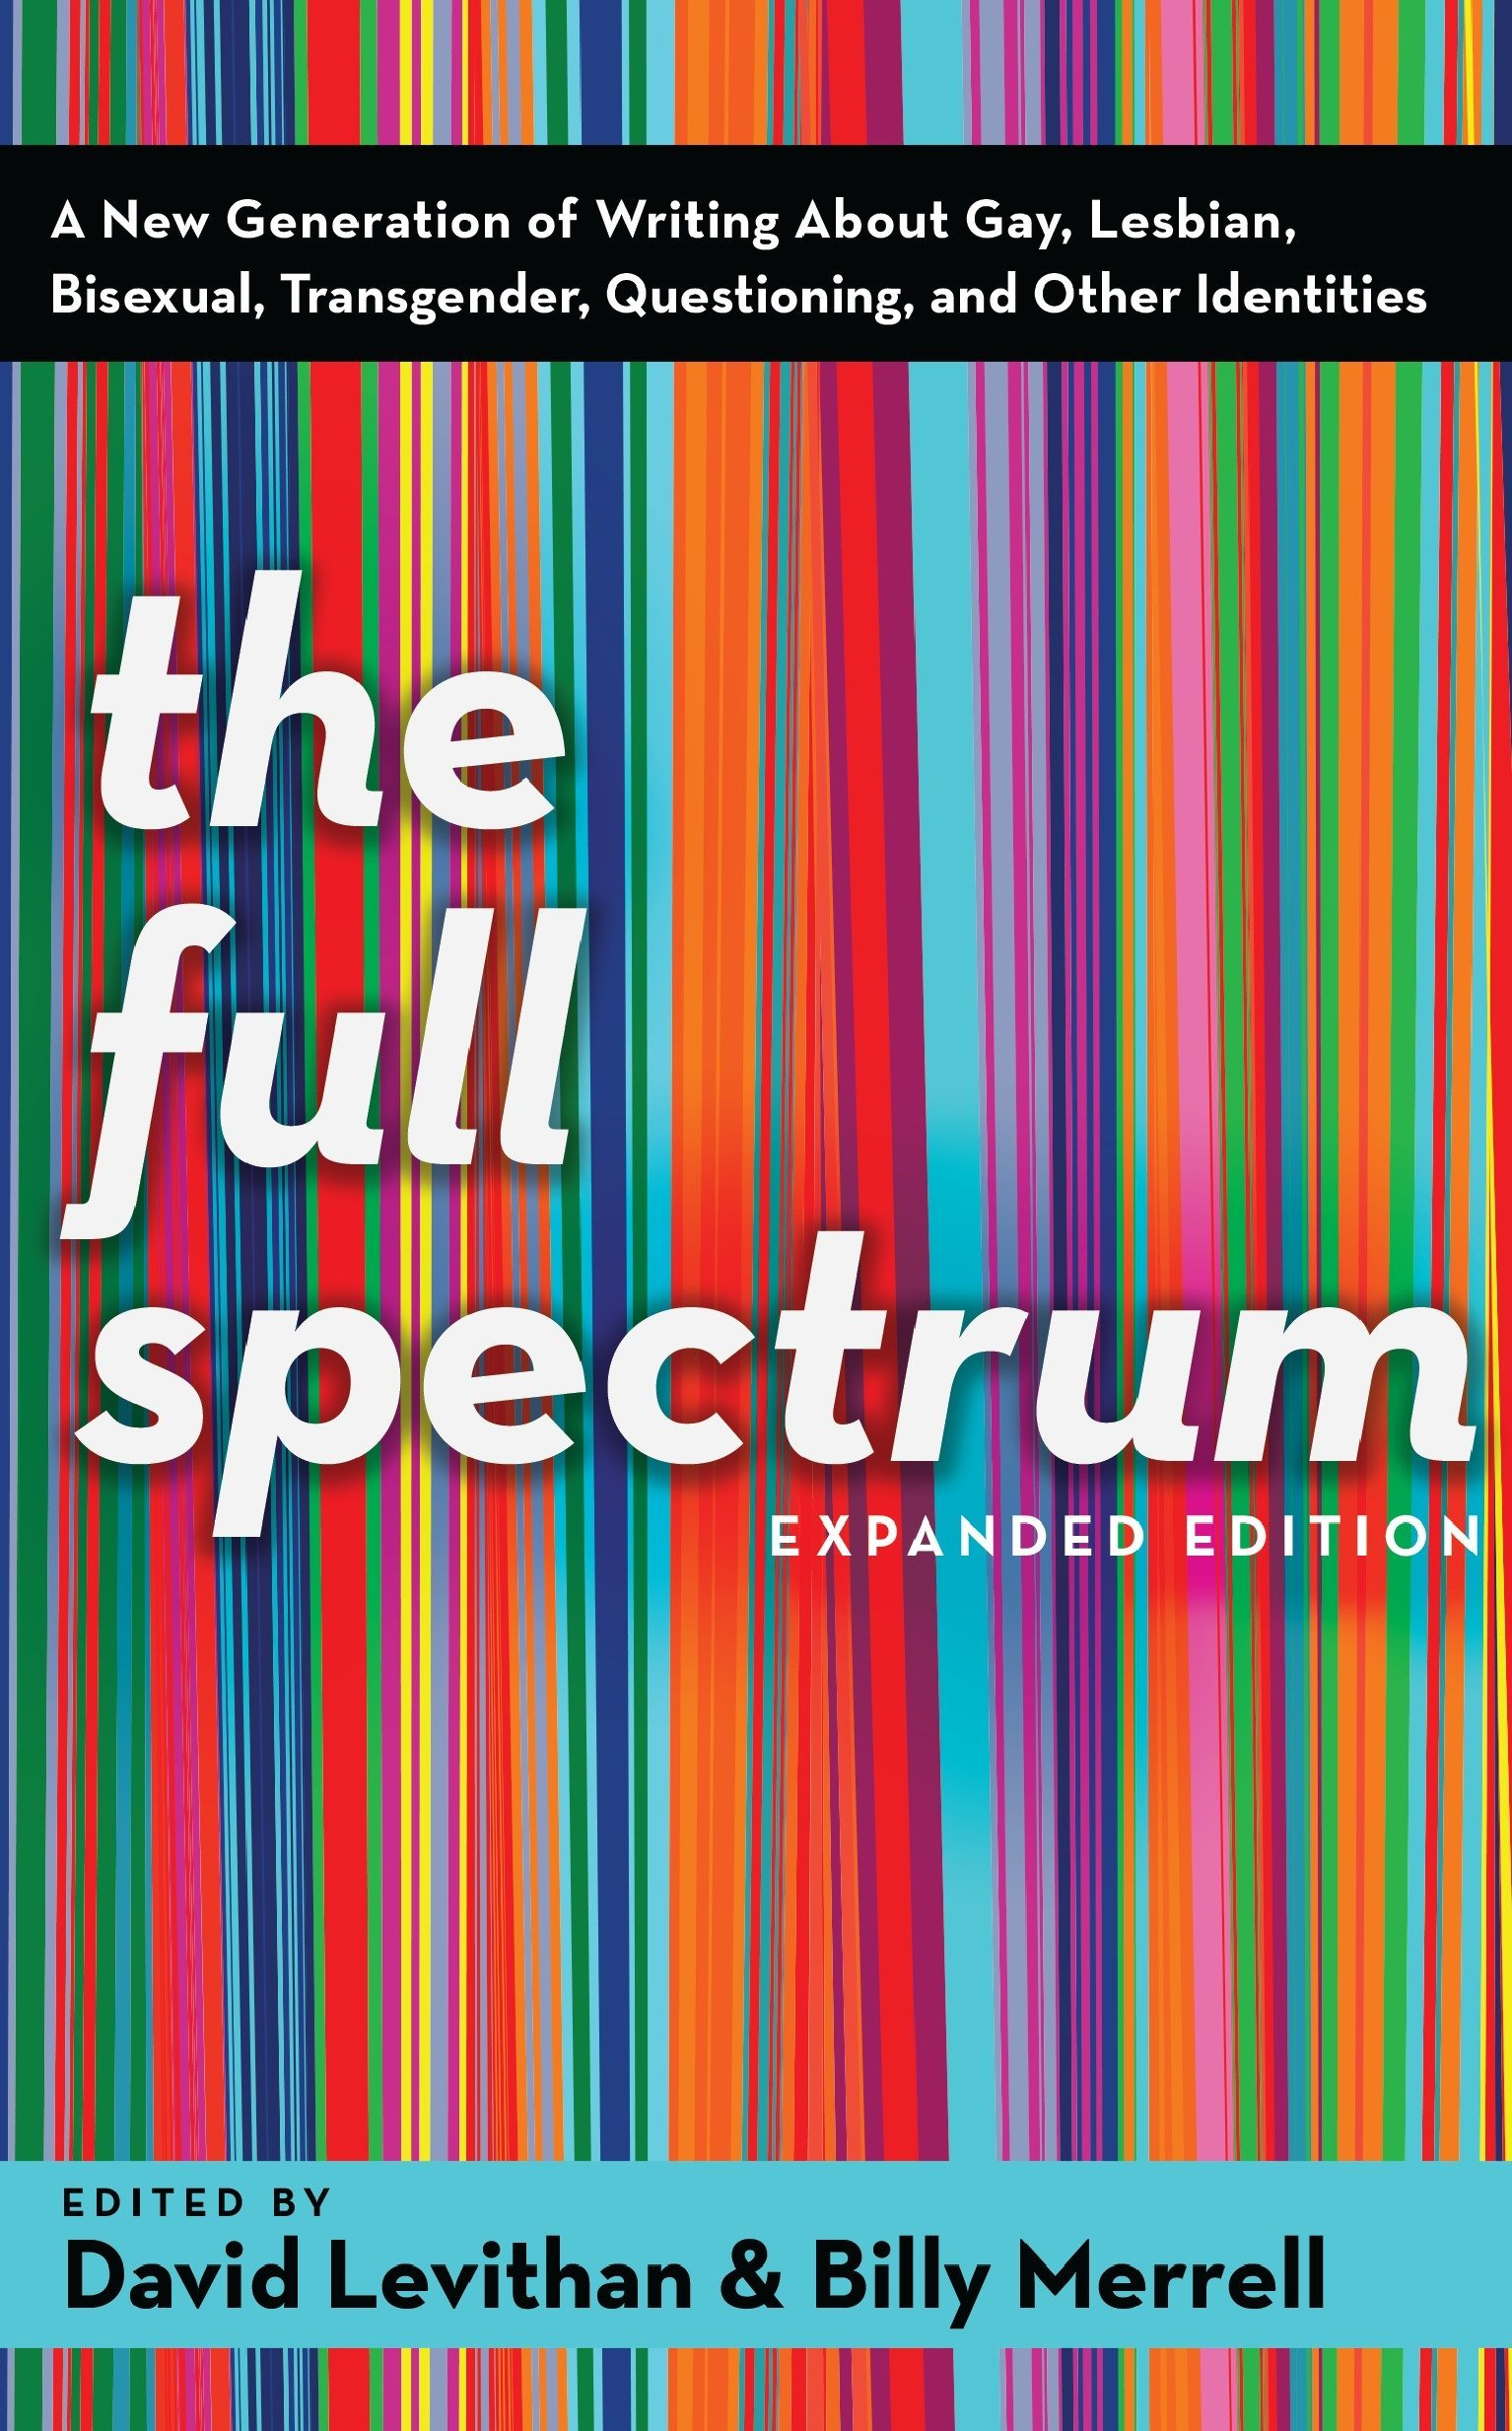 Download The Full Spectrum: A New Generation of Writing About Gay, Lesbian, Bisexual, Transgender, Questioning, and Other Identities ebook